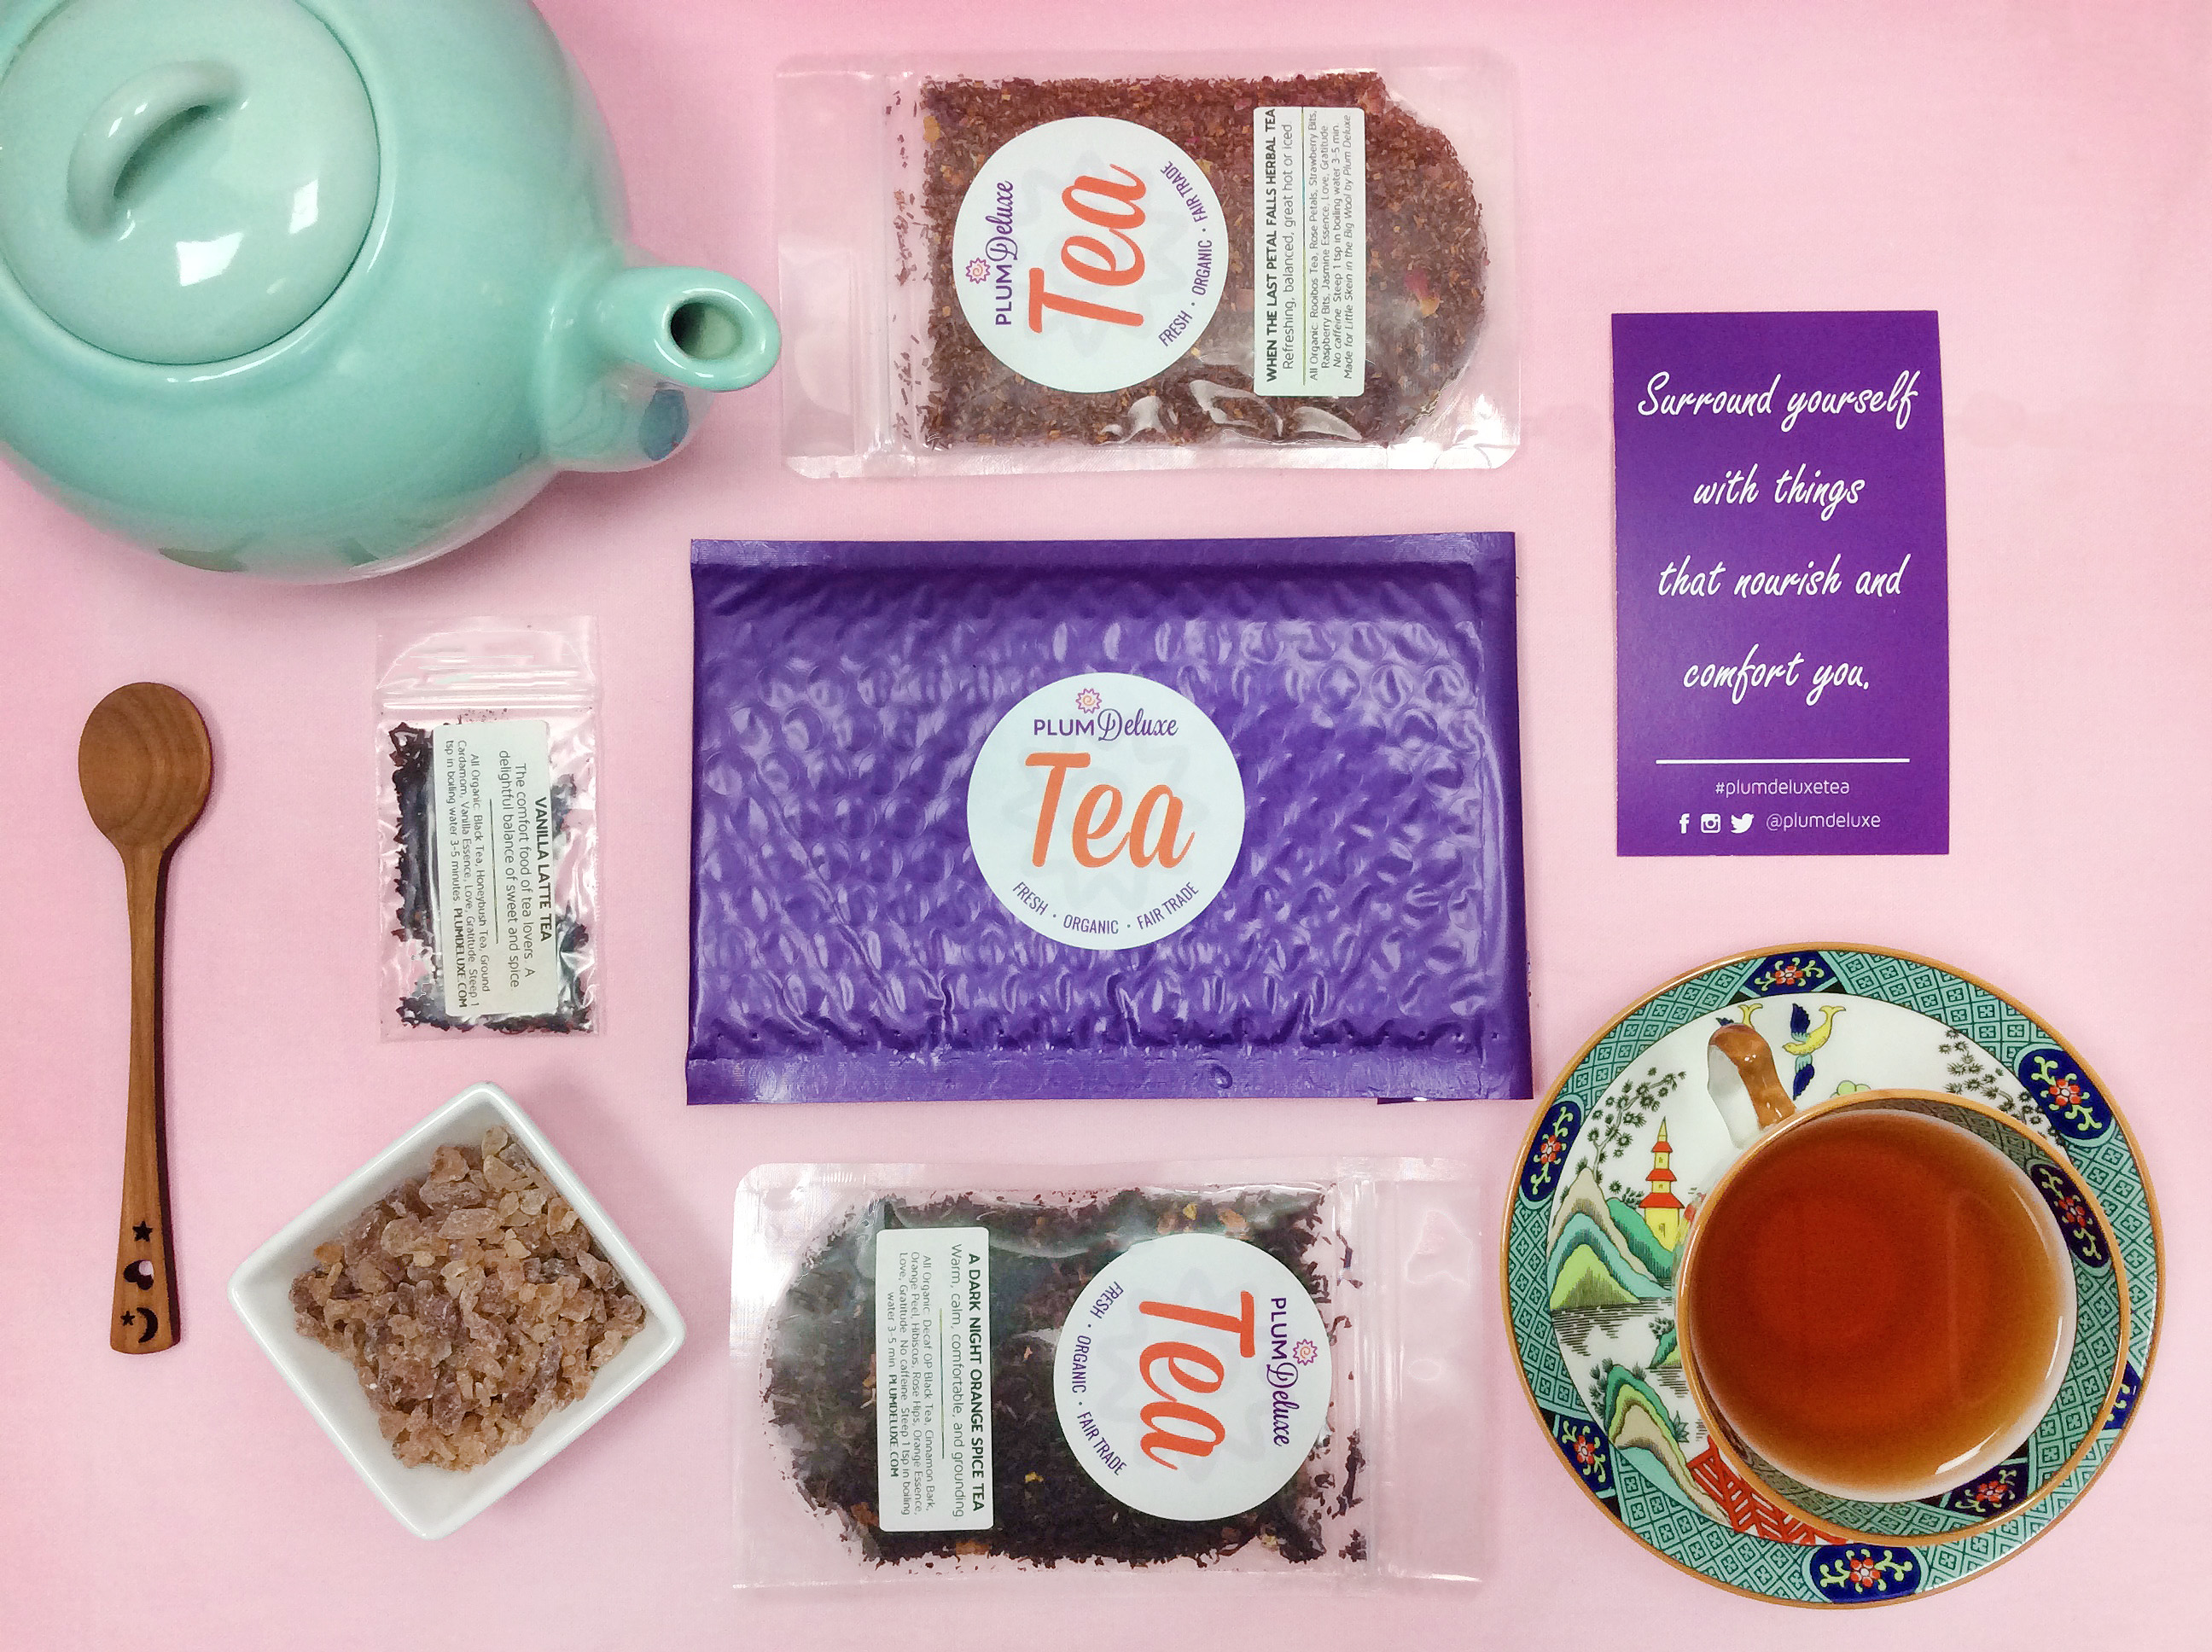 Overhead view of a tea of the month club shipment, including purple package, encouragement card, two packages of Plum Deluxe loose leaf tea, a dish of rock sugar, cherrywood spoon, light blue teapot, and teacup arranged on a pink tablecloth.